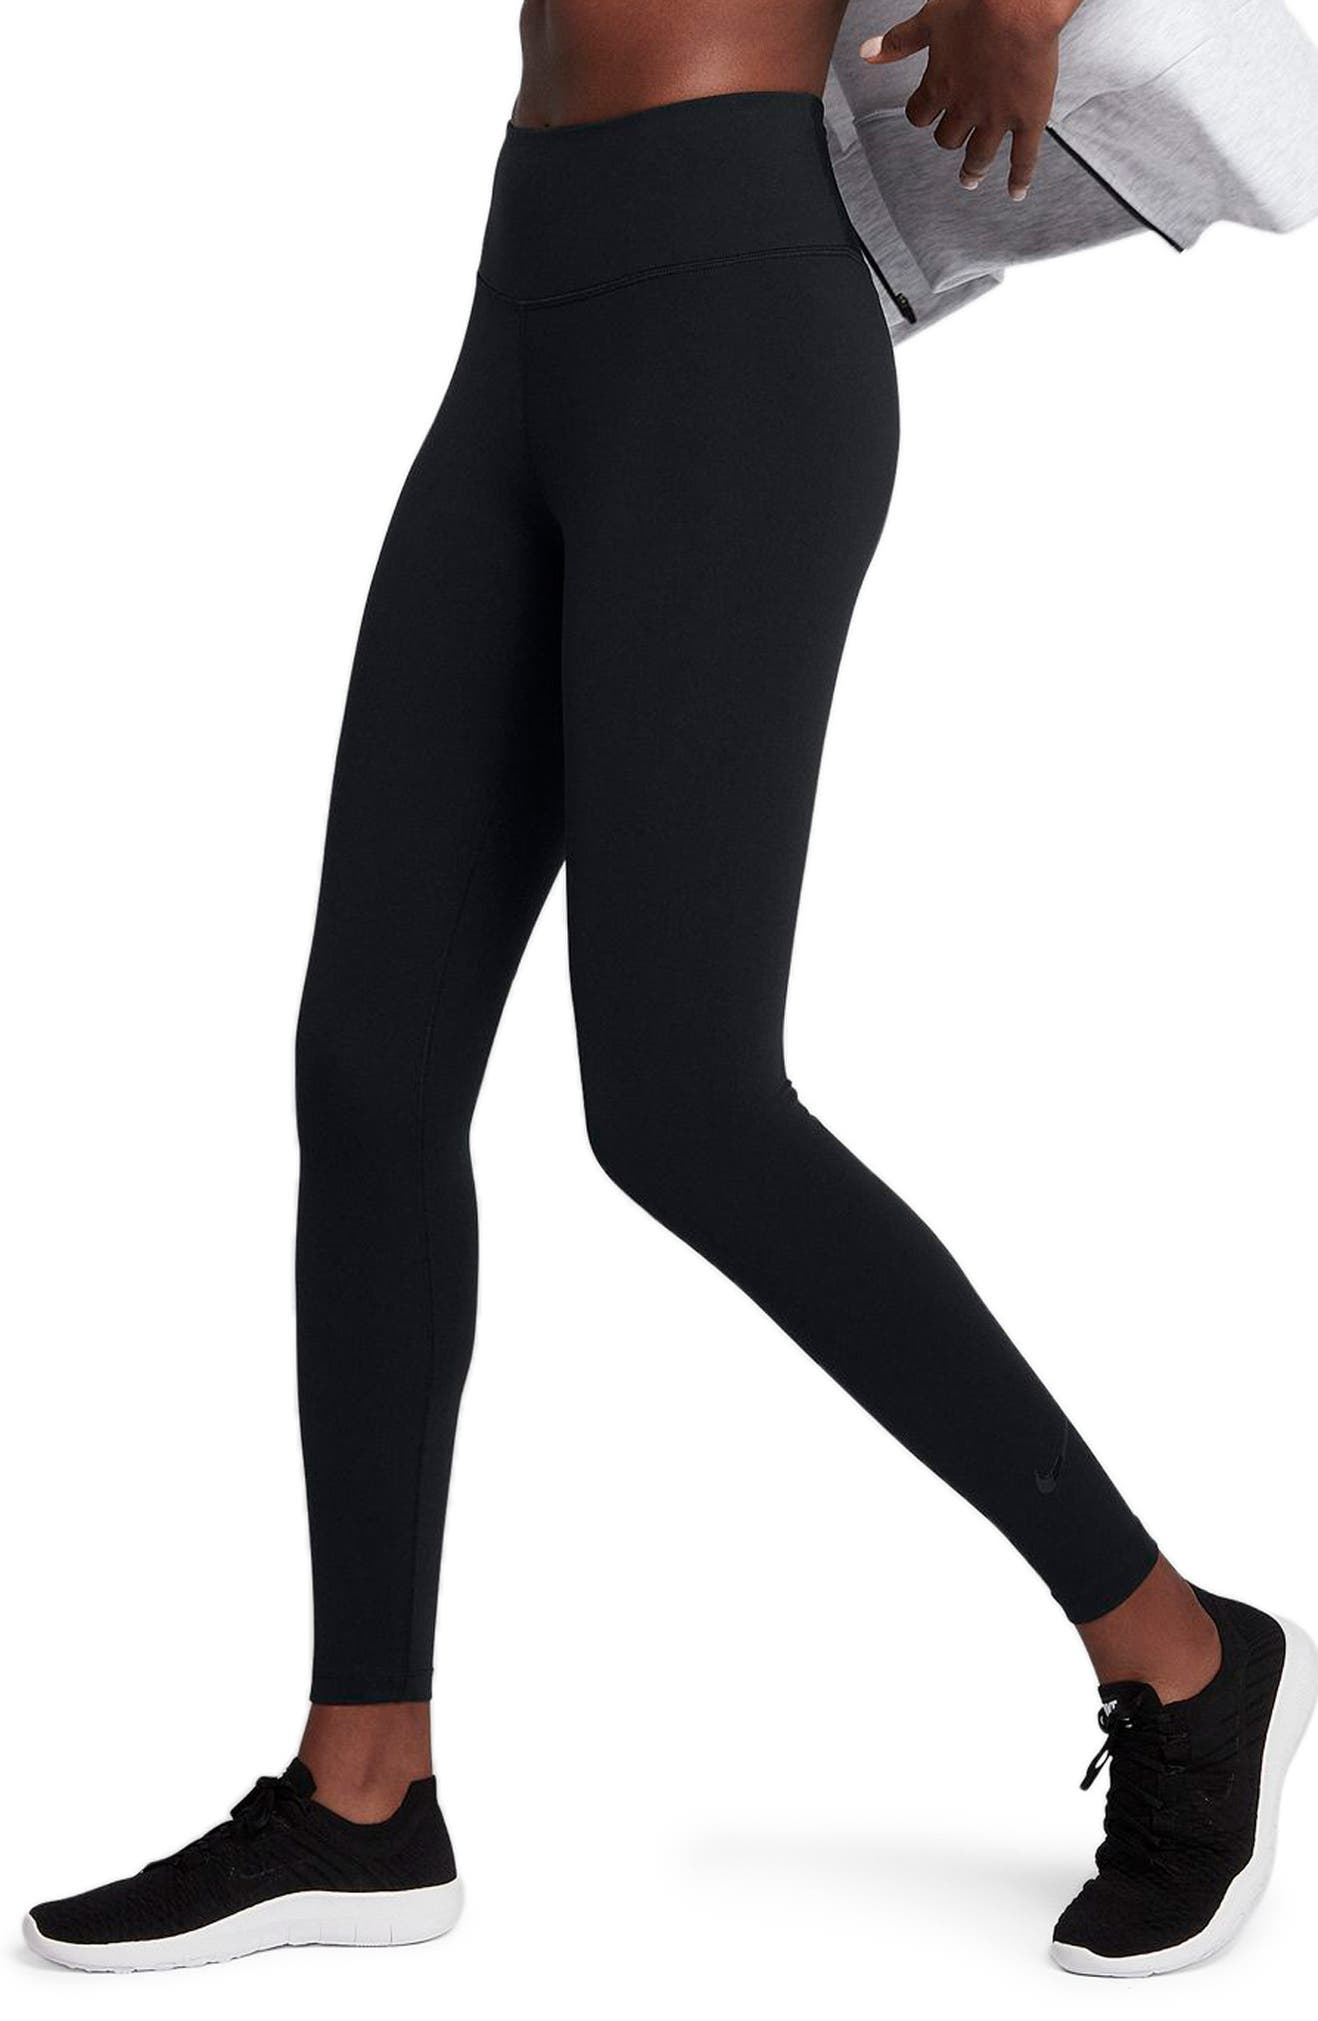 fd2002f934ef7 Nike Sculpt Lux Training Tights | Nordstrom